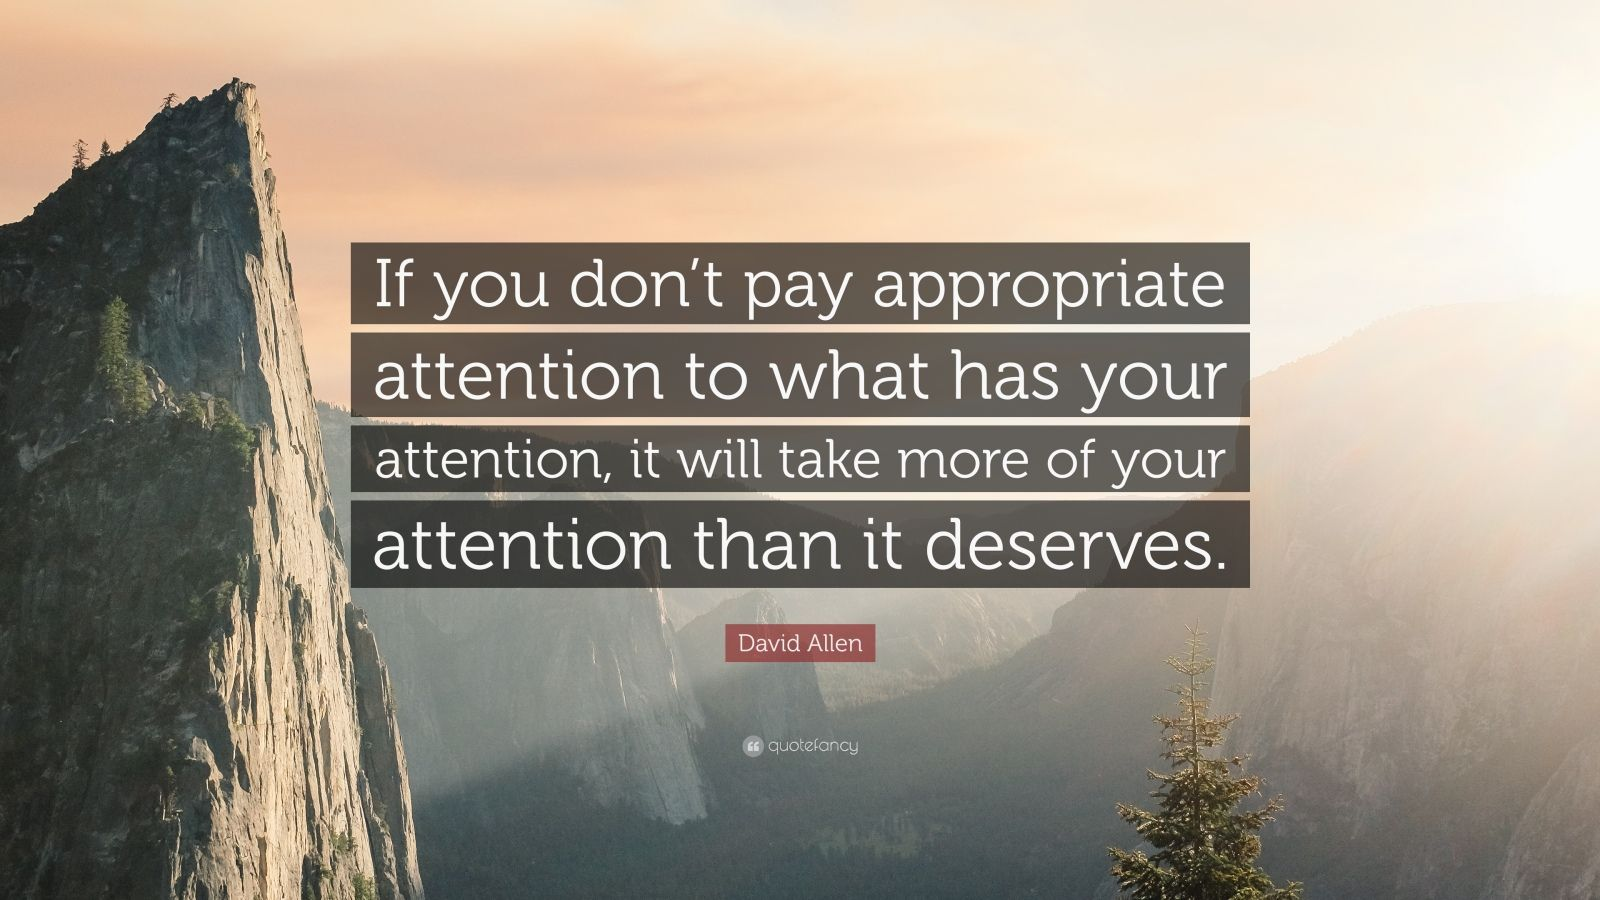 """David Allen Quote: """"If you don't pay appropriate attention to what has your attention, it will take more of your attention than it deserves."""""""